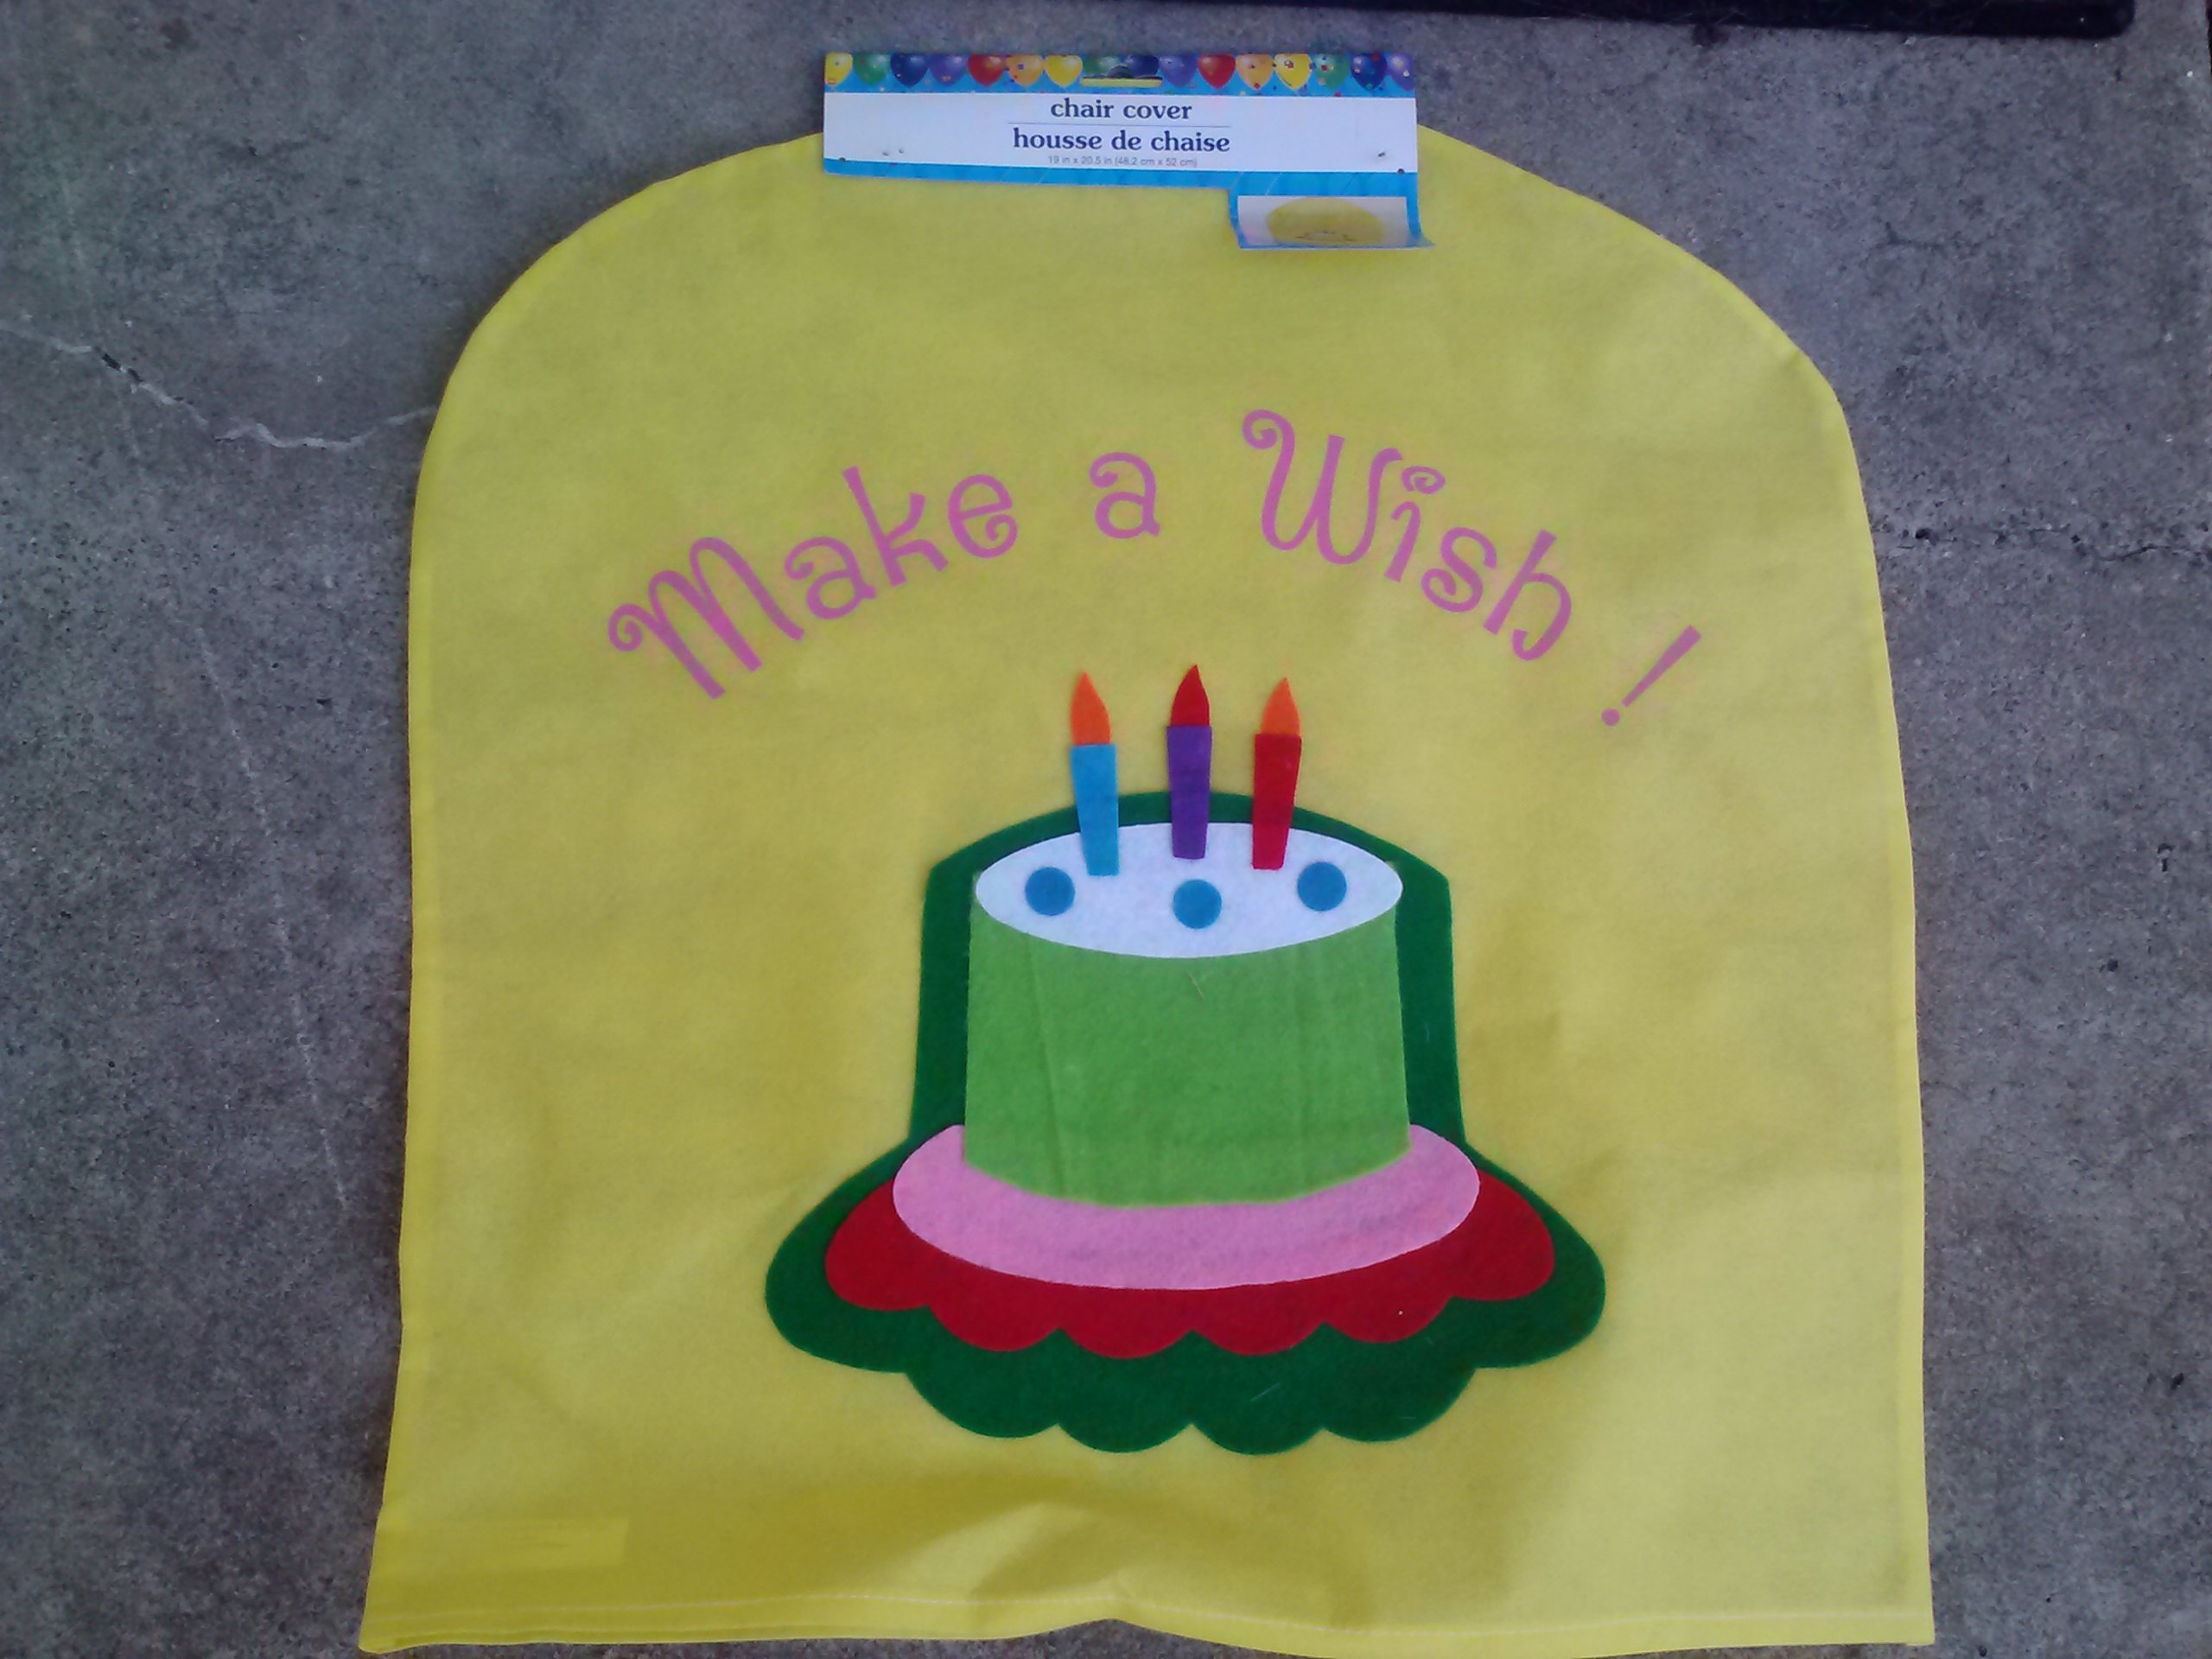 Children's Birthday Chair Cover (Assorted, Designs & Quantities Vary)